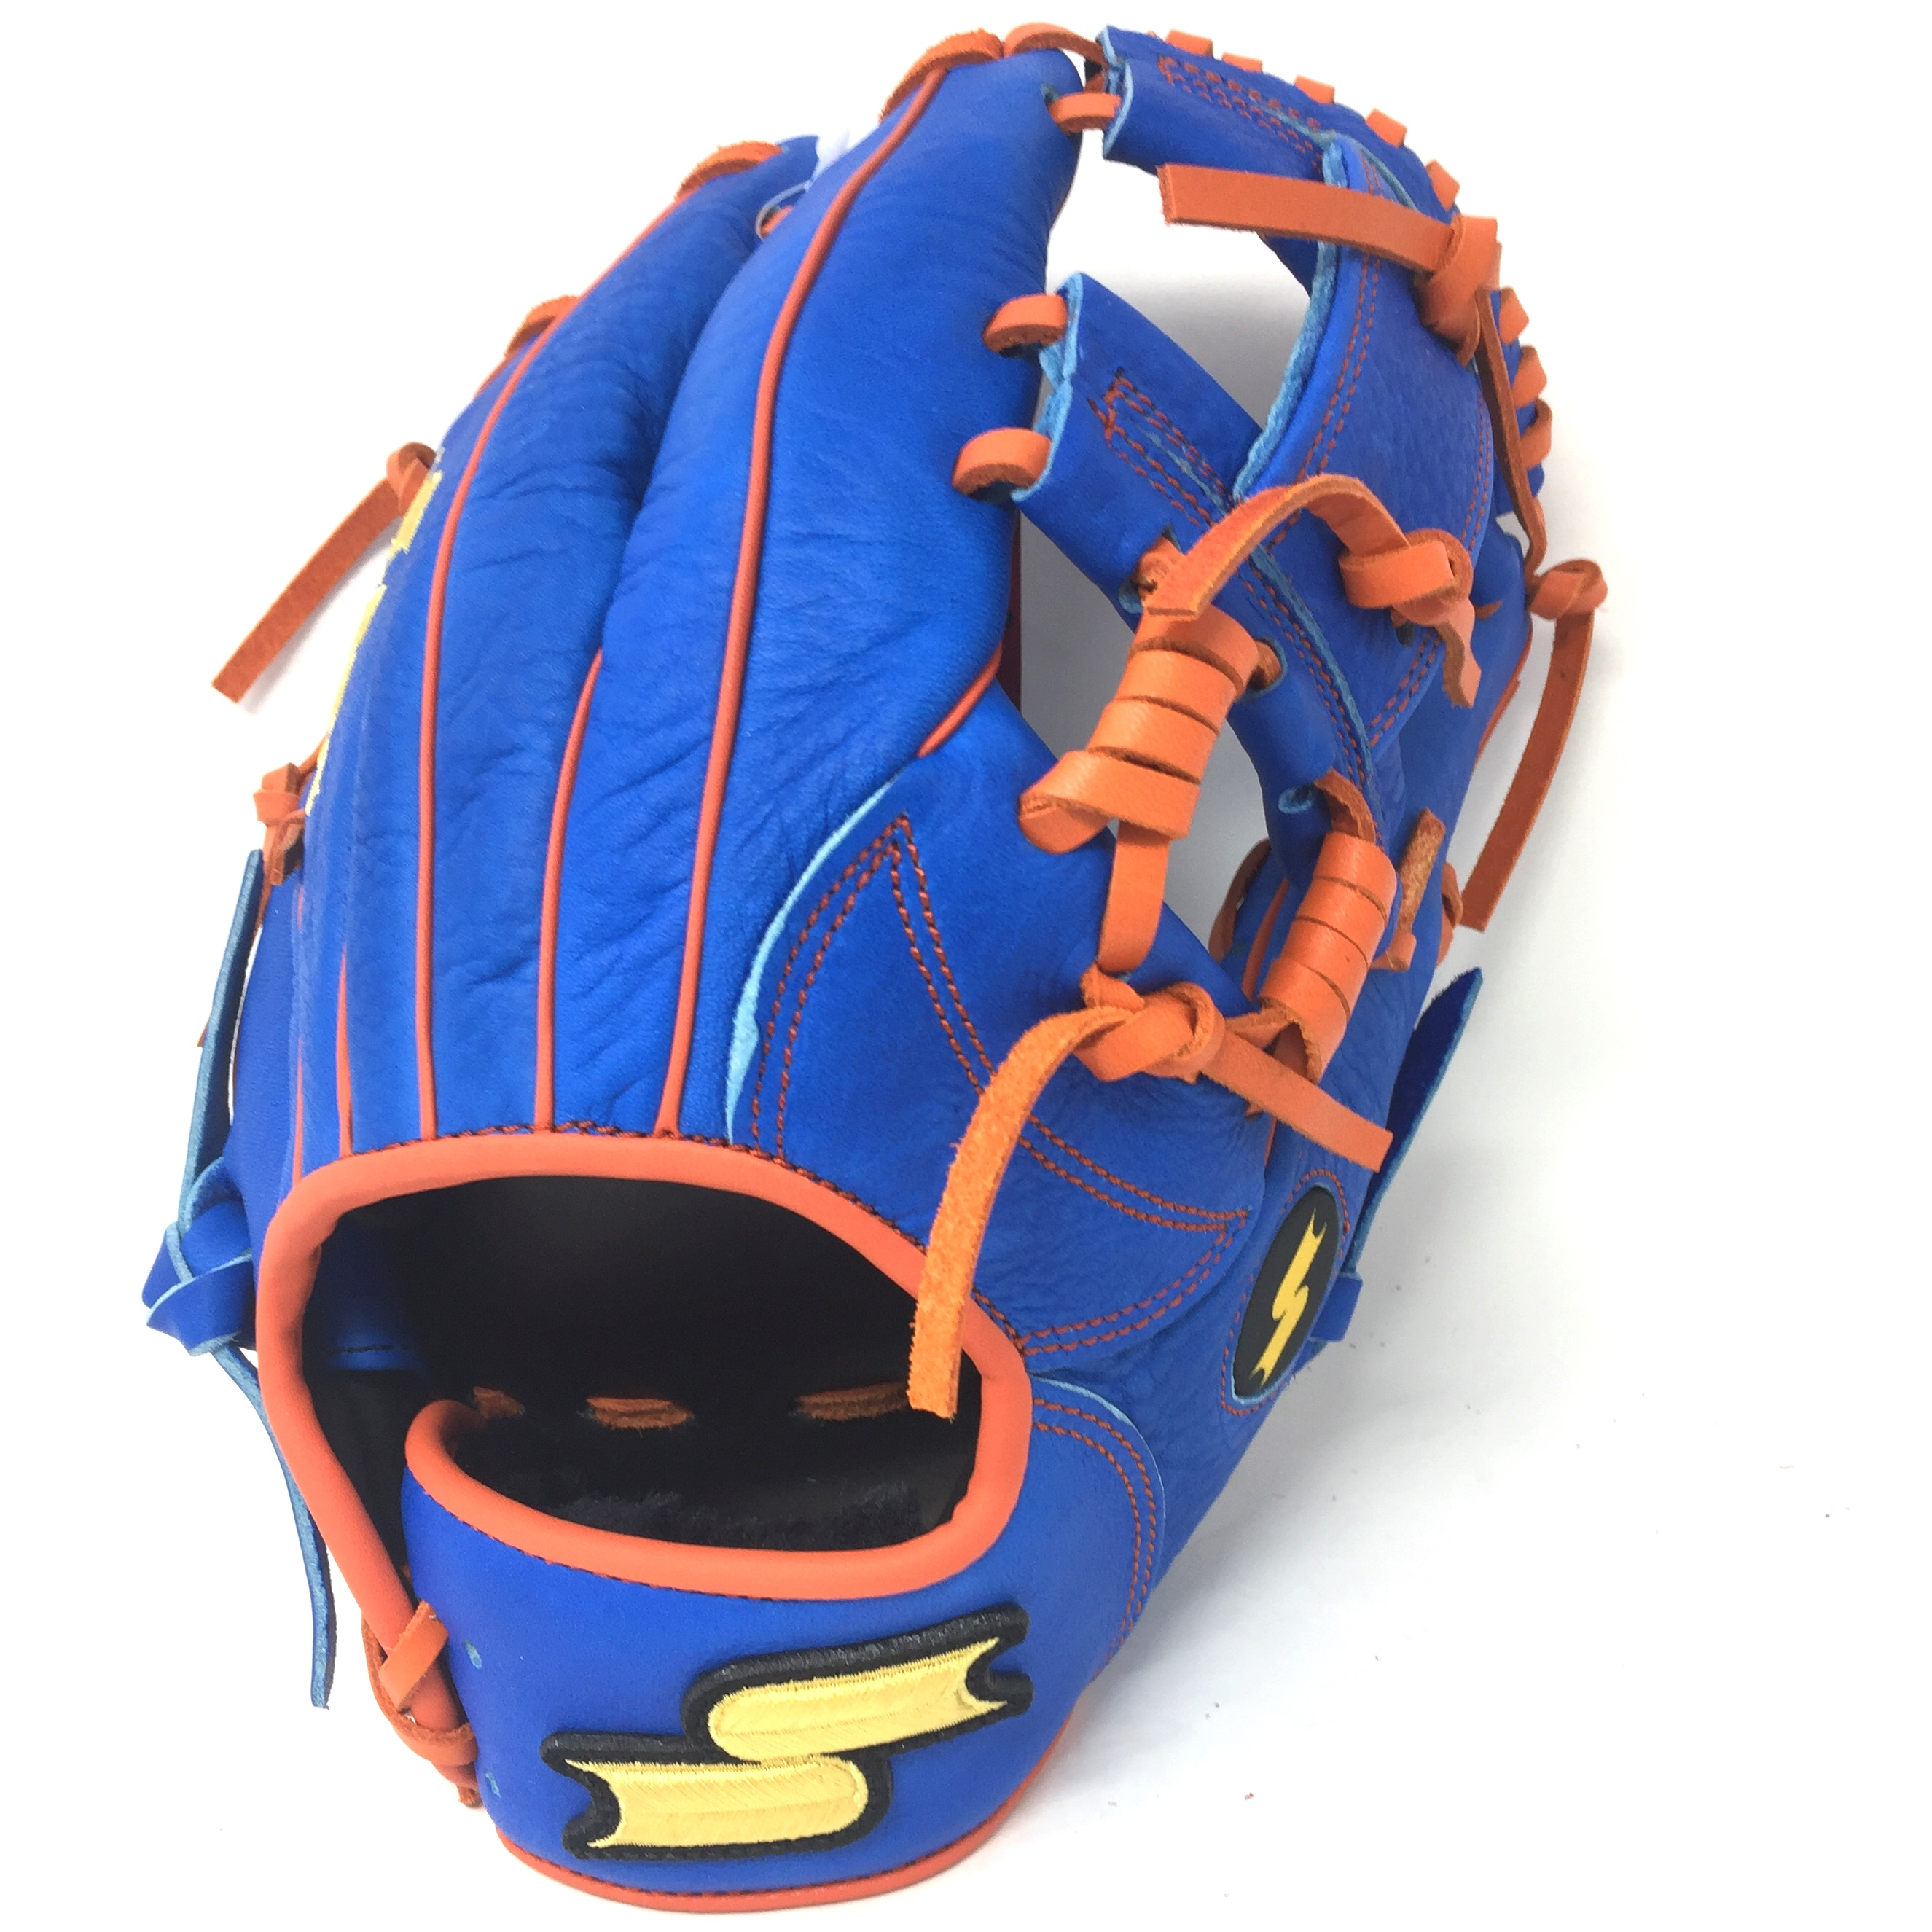 ssk-tensai-series-11-5-cano-baseball-glove-right-hand-throw S20TCANO-RightHandThrow  083351453220 <p>11.50 Inch Baseball Glove Colorway Blue | Orange Conventional Open Back